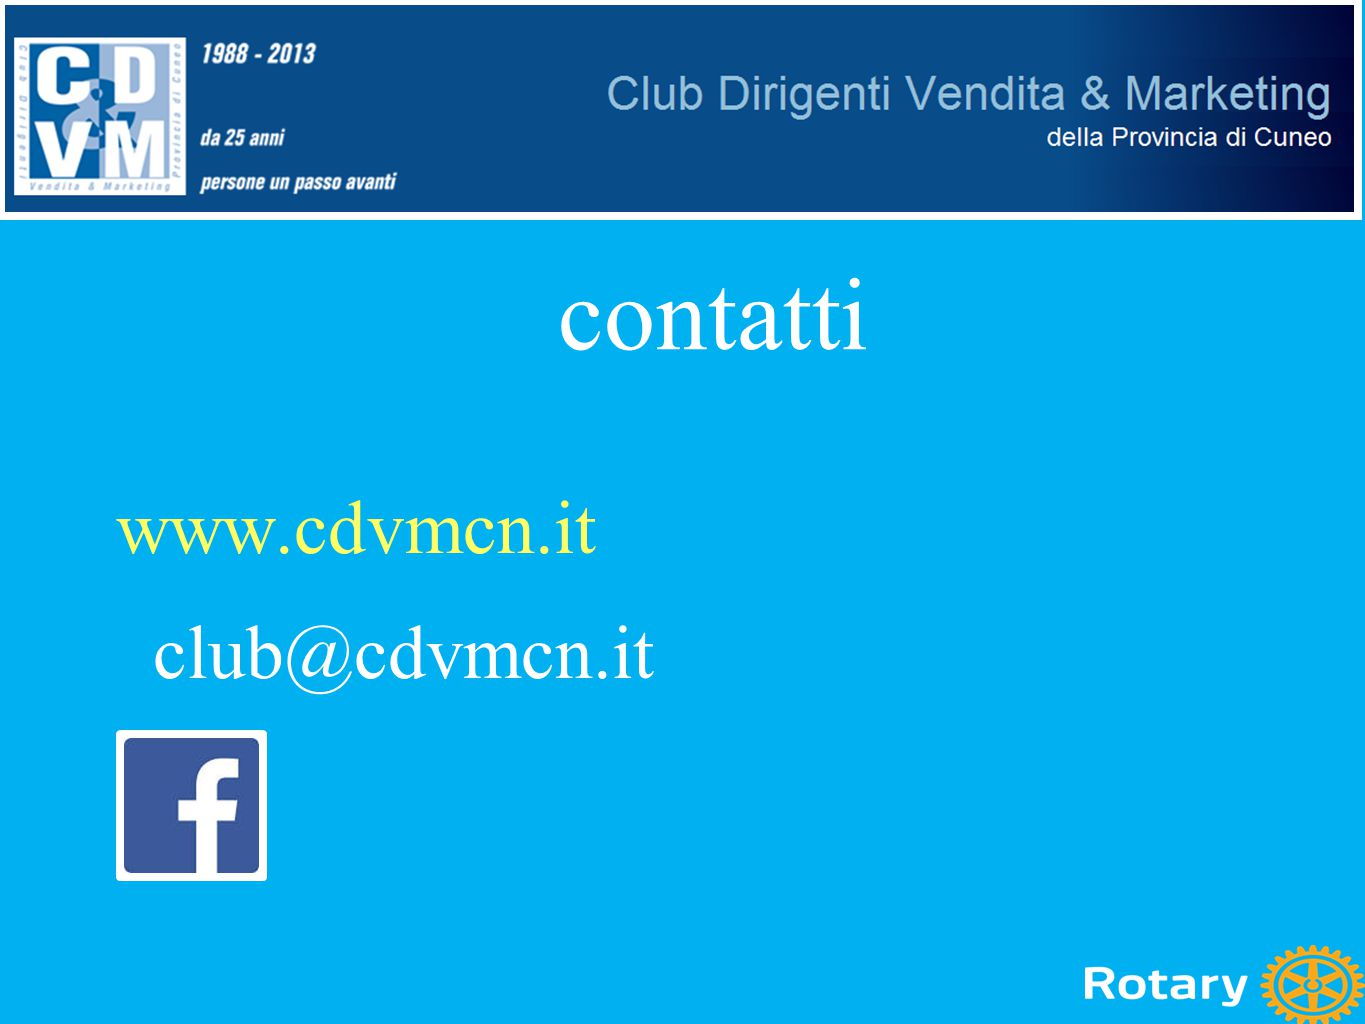 contatti www.cdvmcn.it club@cdvmcn.it